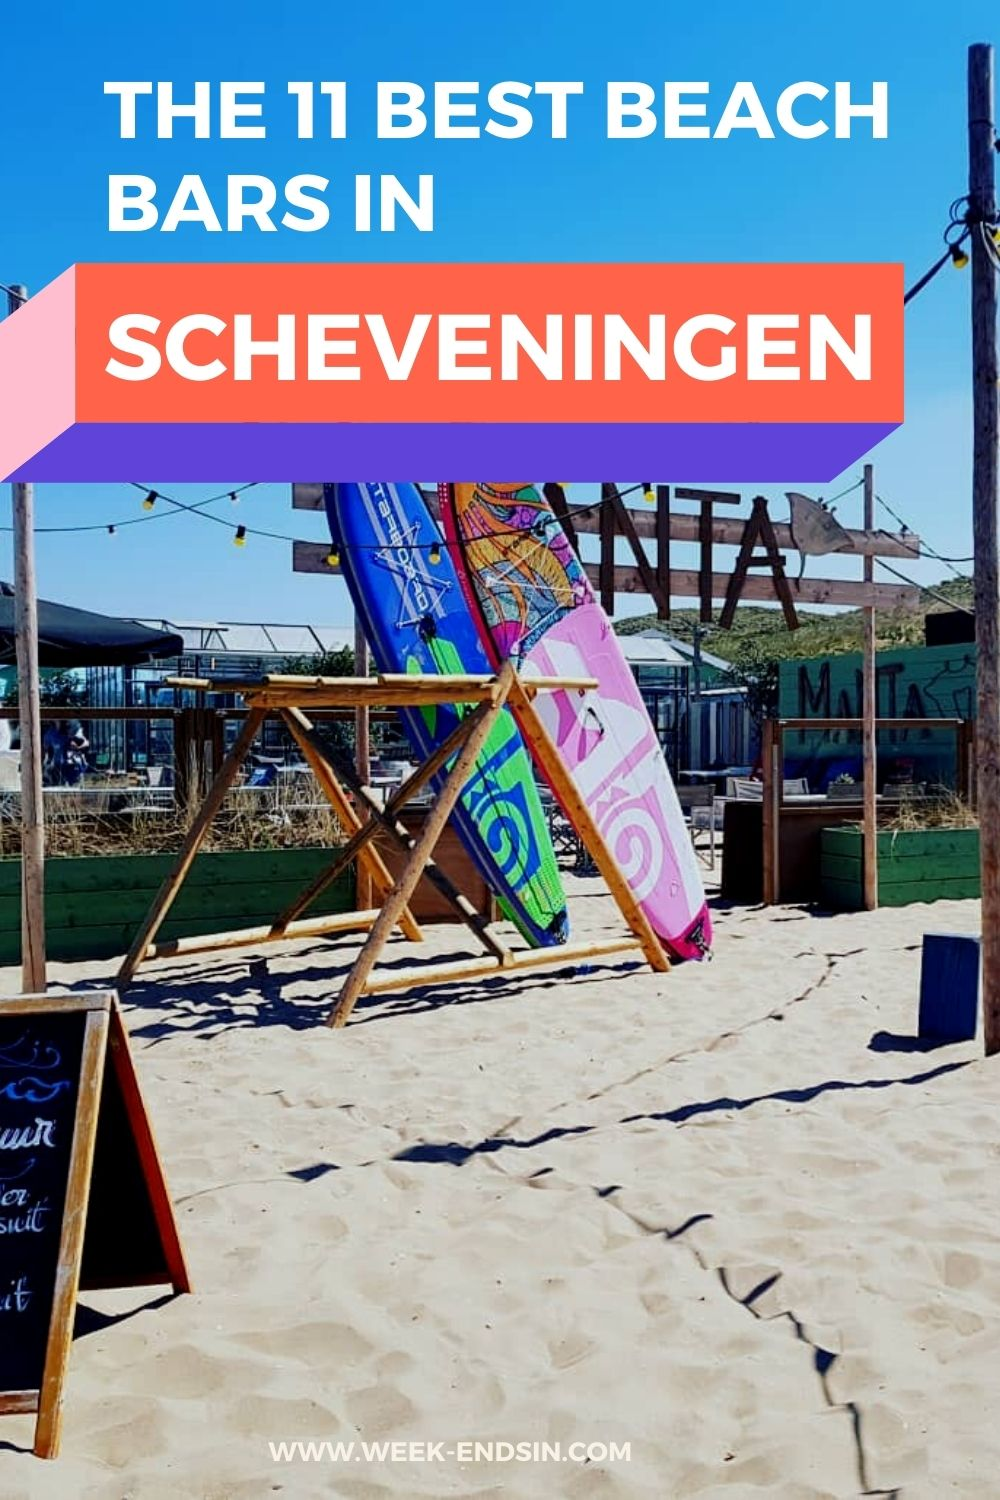 Looking for the best beach bars in Scheveningen? Enjoy these gems with your feet in the sand, a cocktail in your hand and the sea right in front of you.☀️